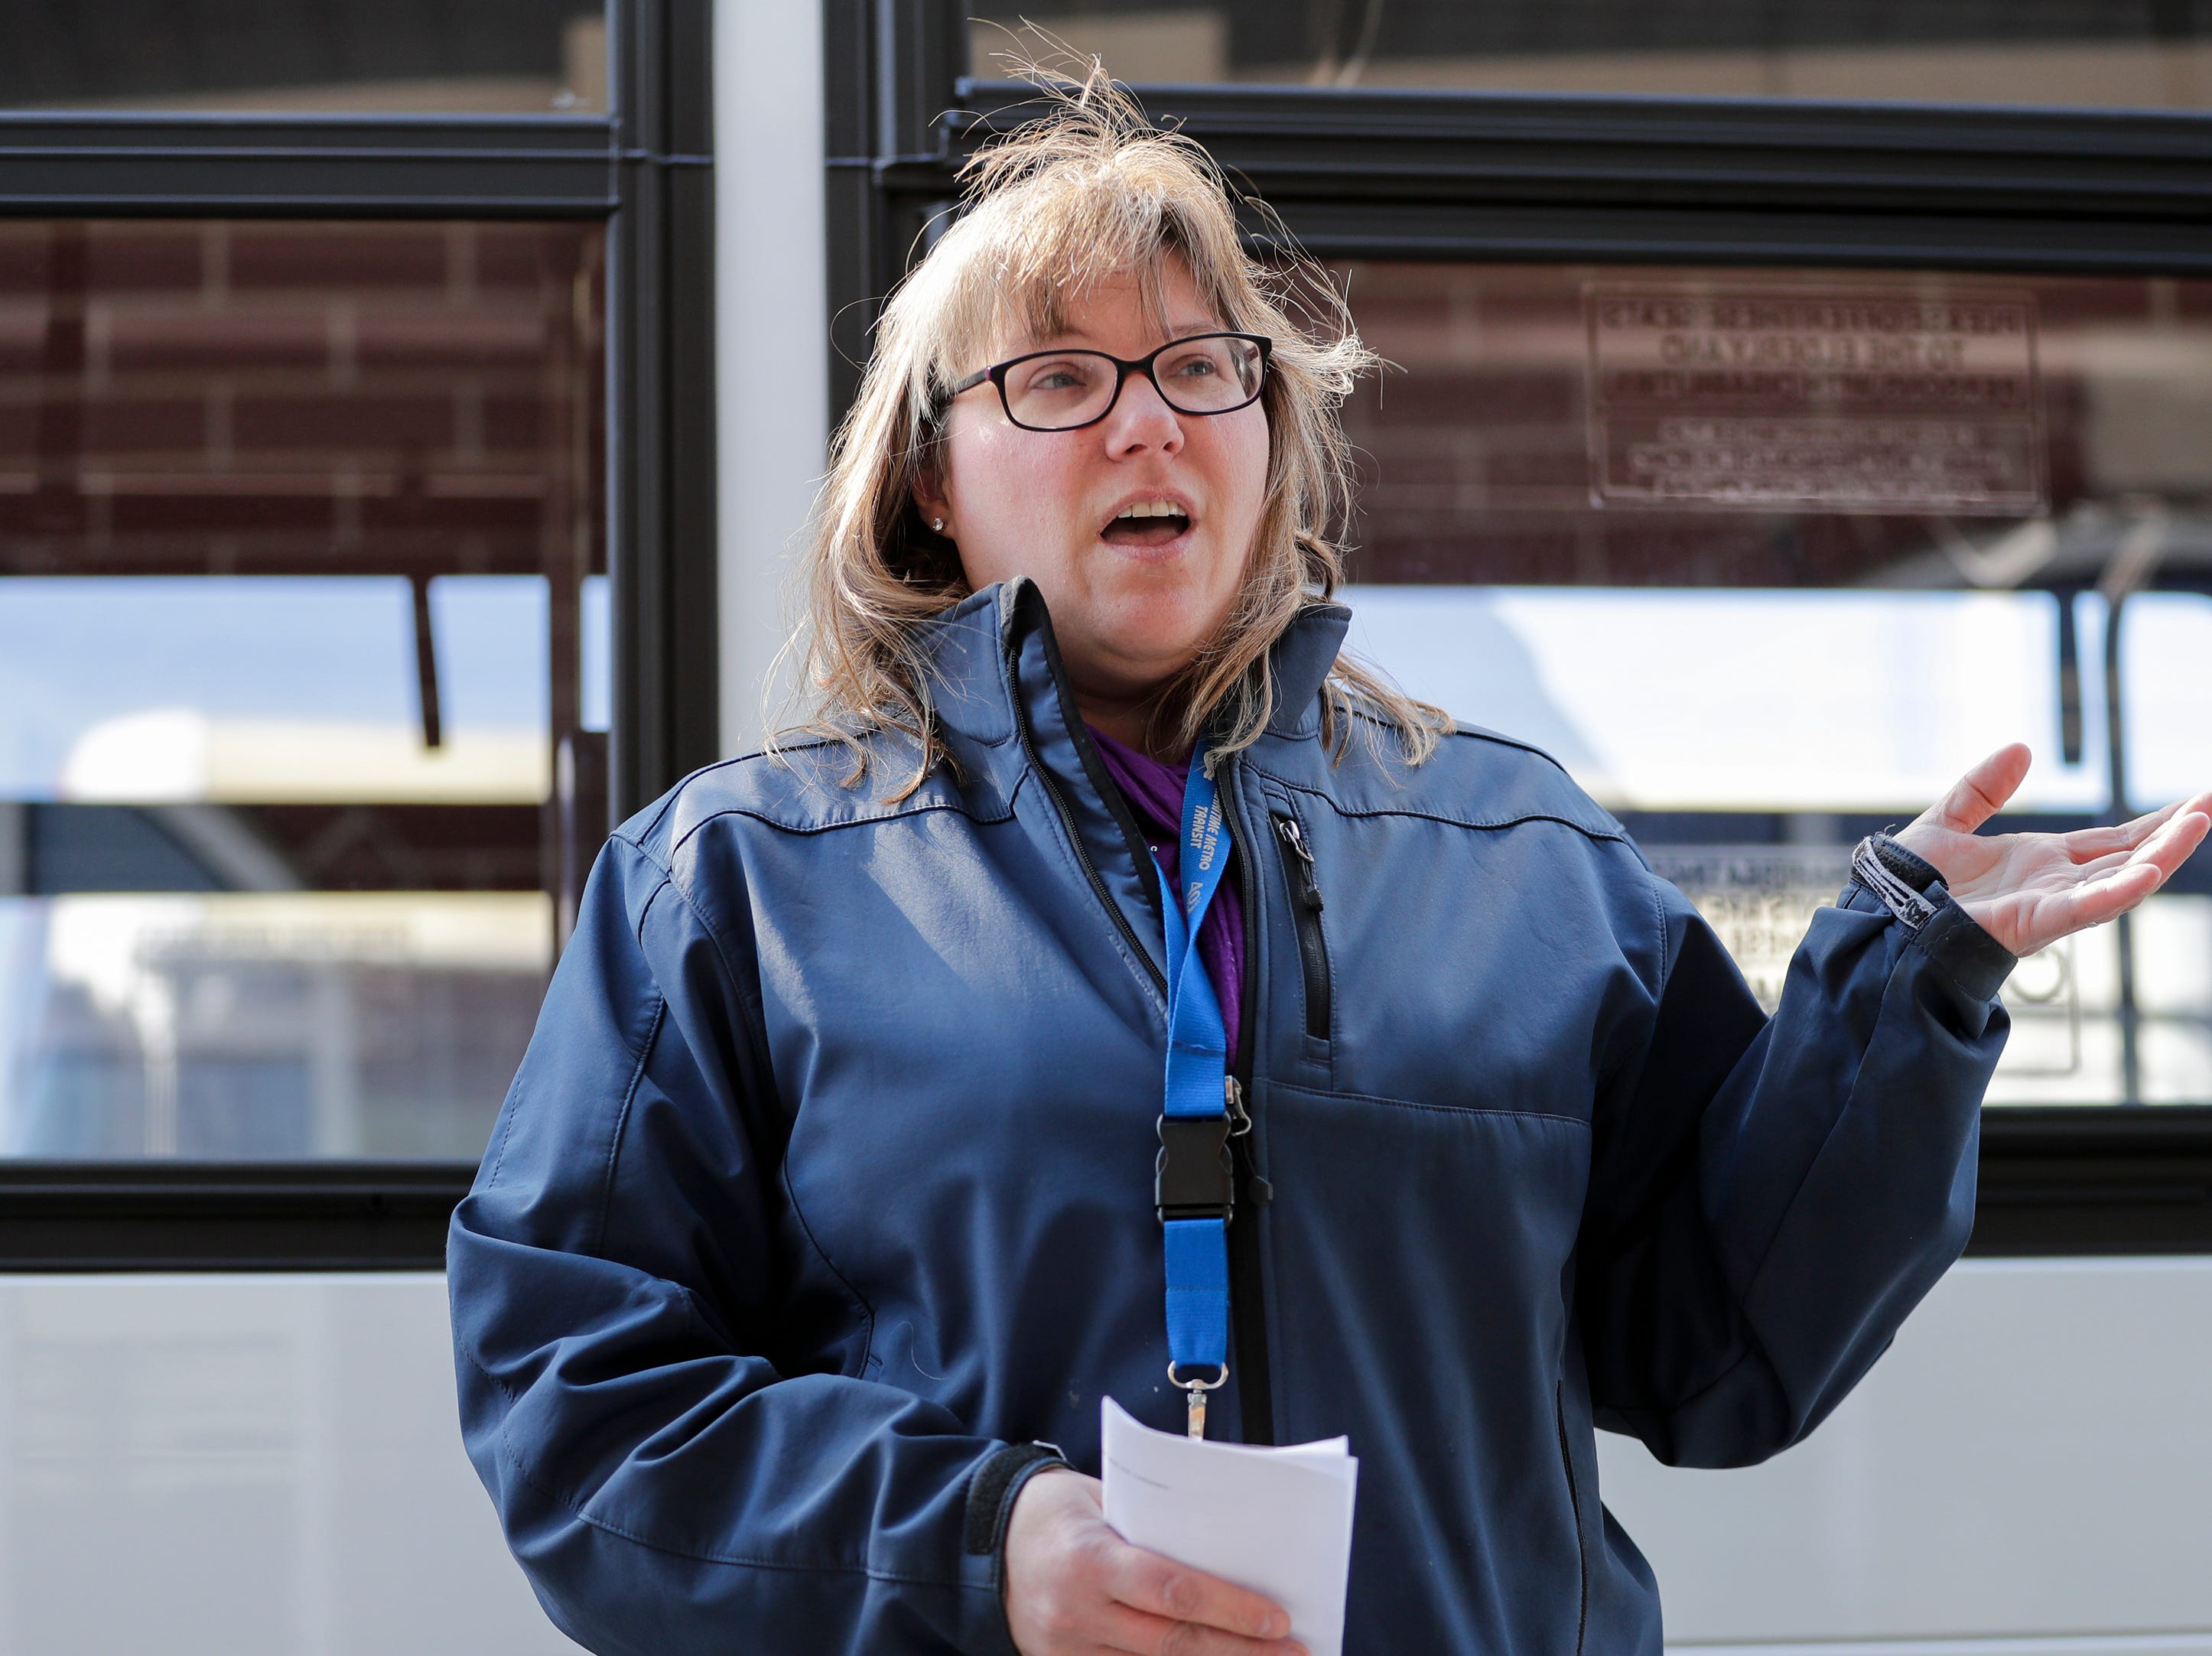 Maritime Metro Transit interim manager Marlo Kohlmann introduces one of six new city buses outside the Maritime Metro Transit transfer station Monday, March 25, 2019, in Manitowoc, Wis. The new buses go into service today. Joshua Clark/USA TODAY NETWORK-Wisconsin